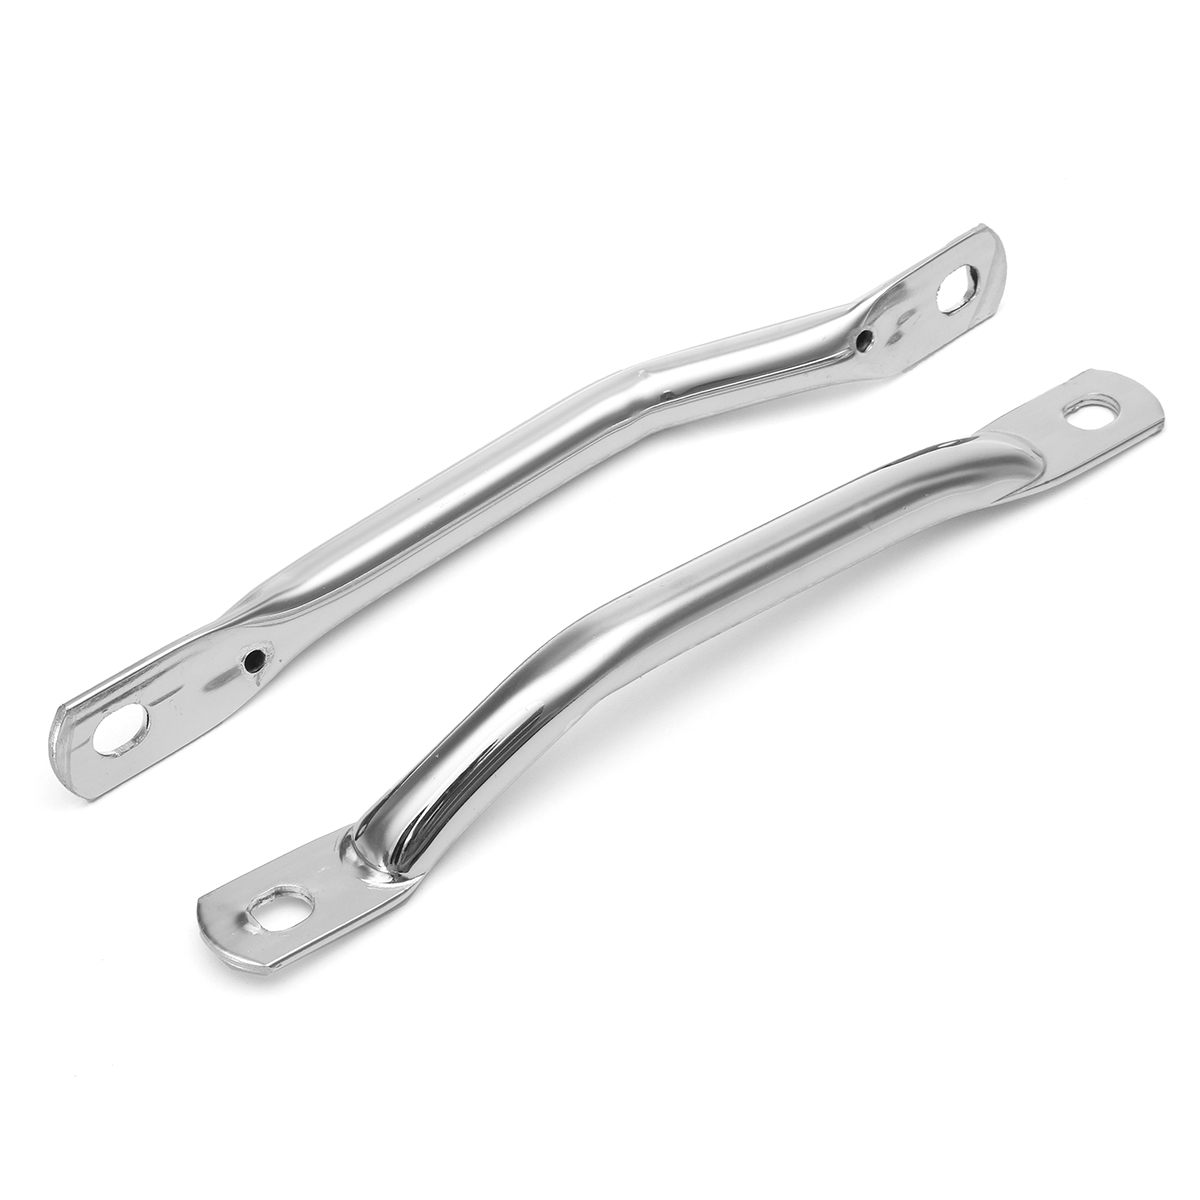 Cafe Race Retro Rear Side Seat Handrail Univesal For Hole Distance 20.5-22mm